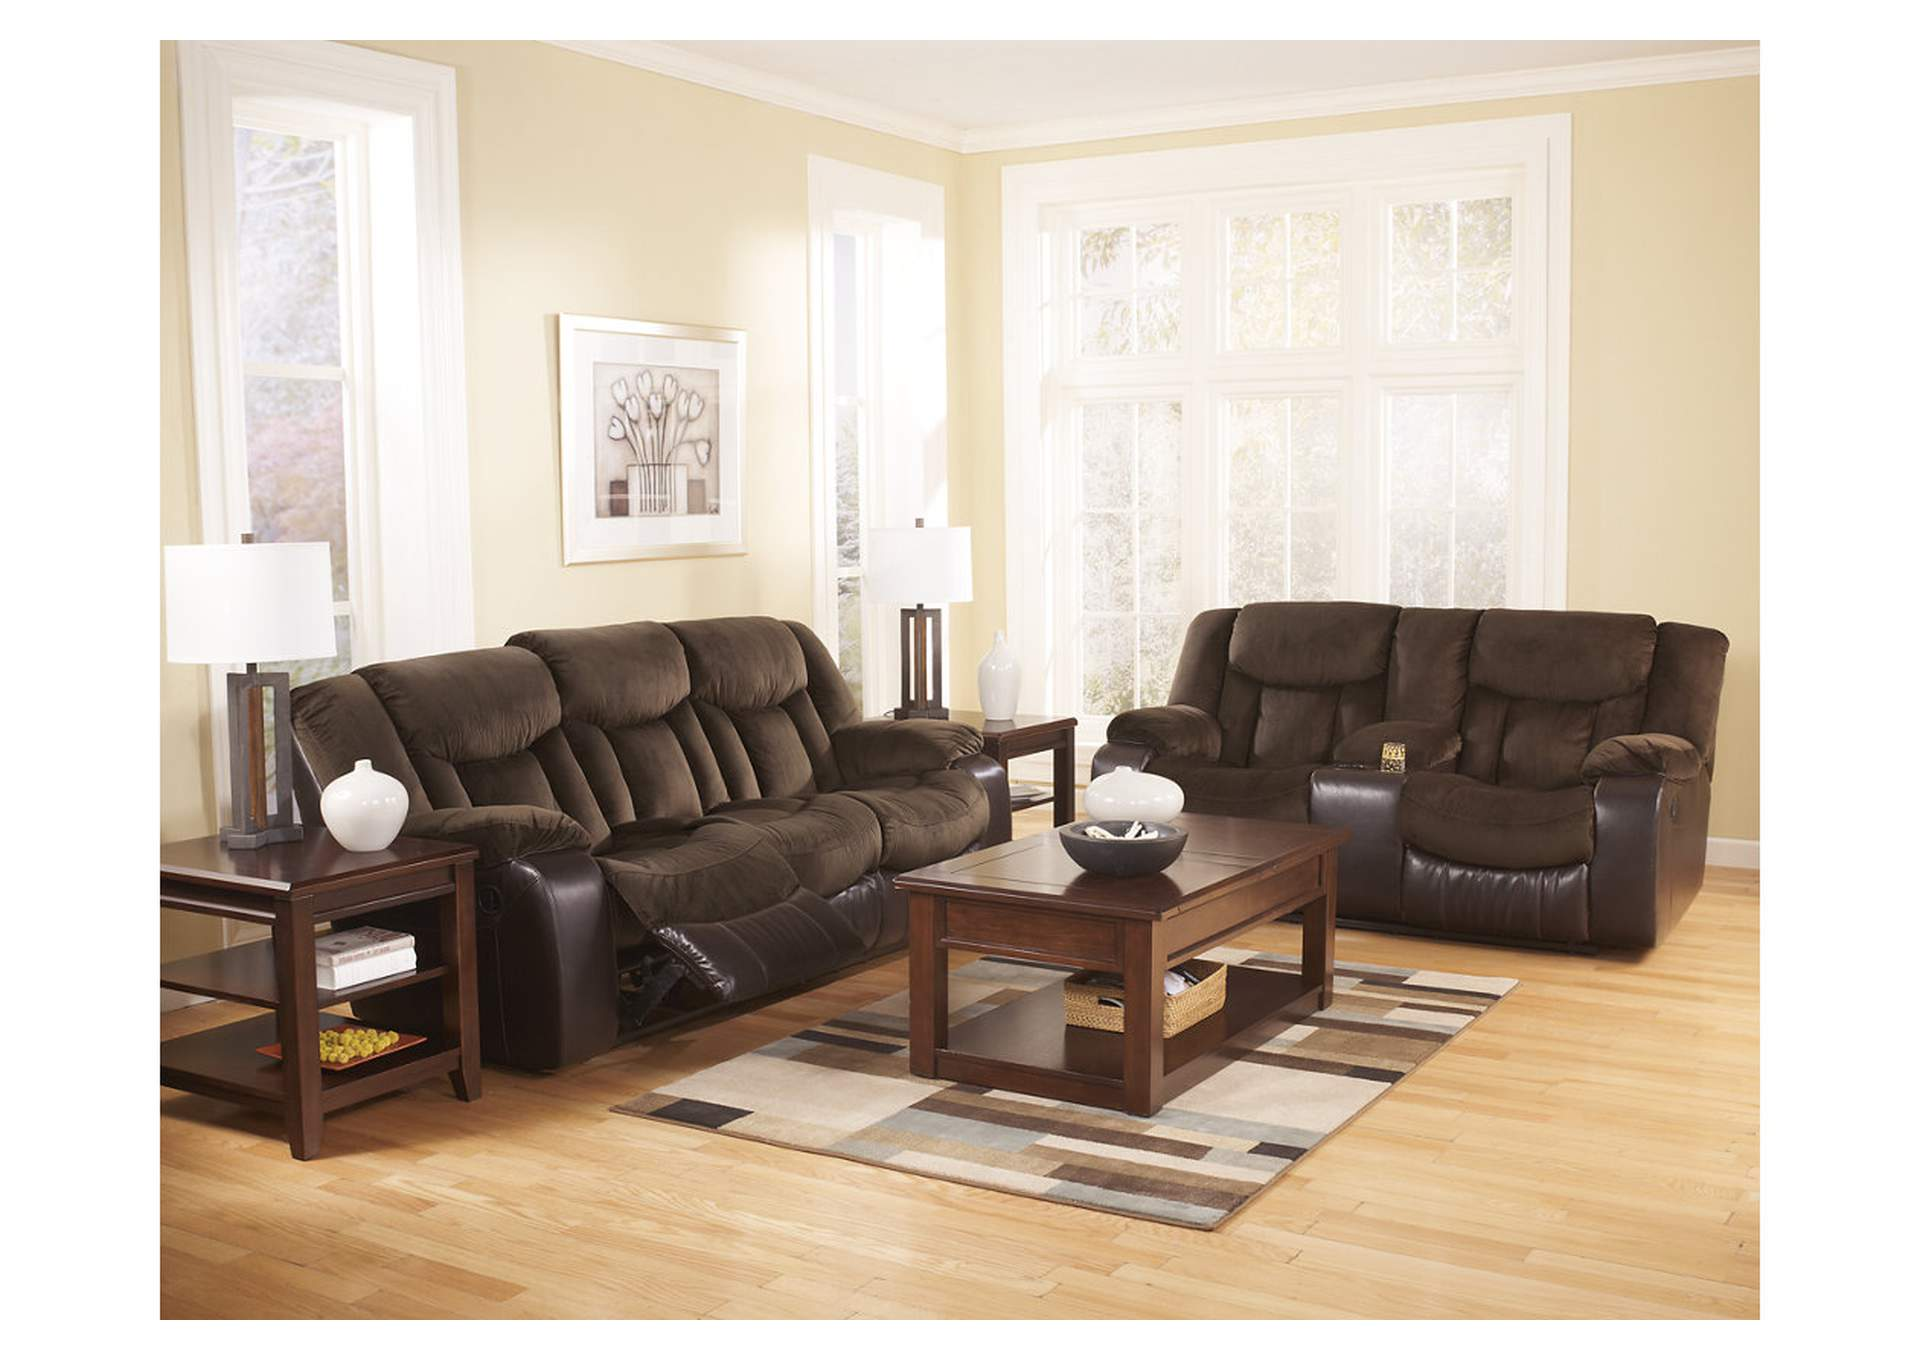 Affordable furniture carpet chicago il tafton java for Affordable furniture and carpet